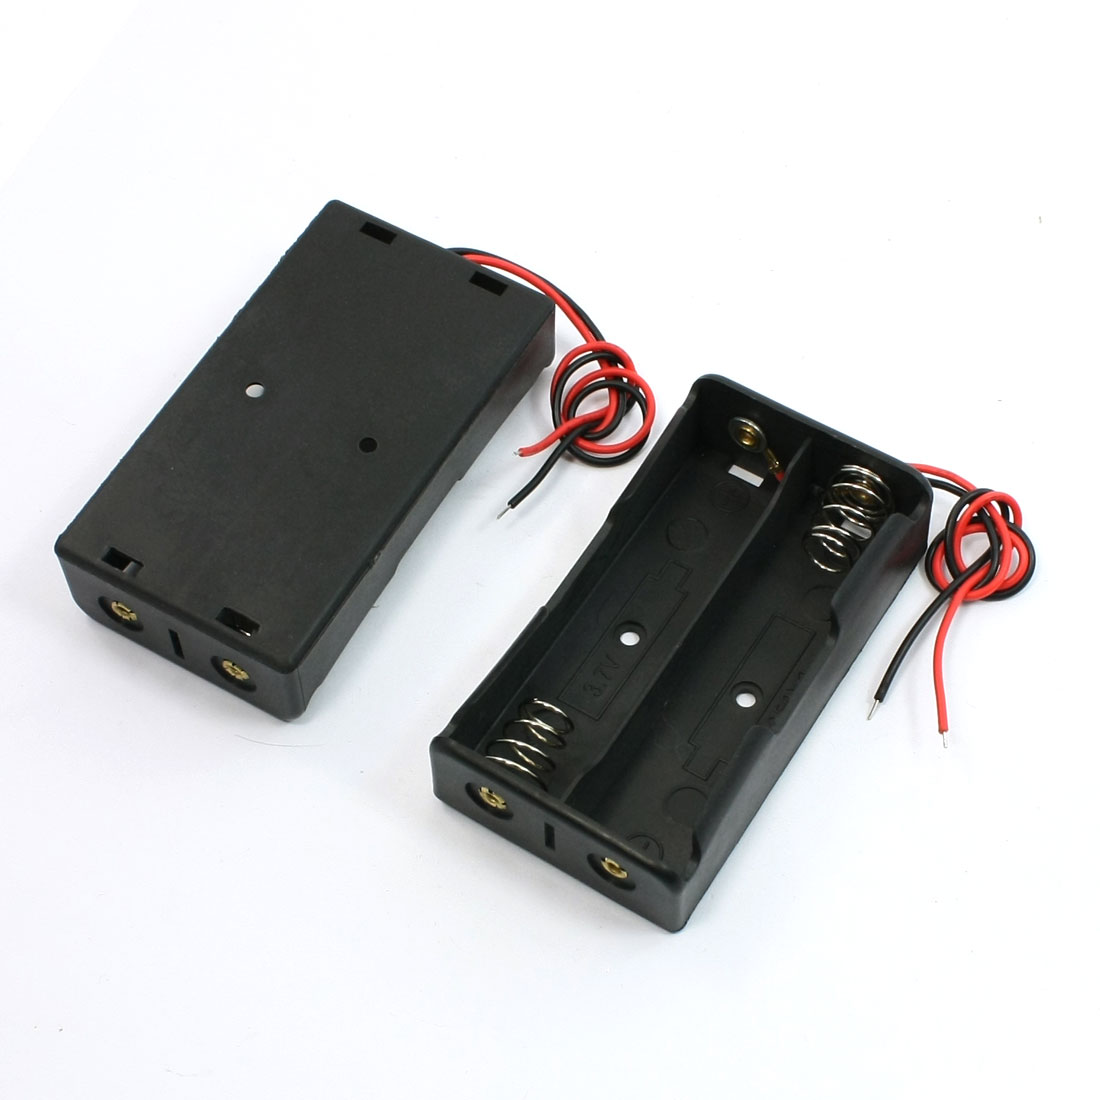 2pcs Black 2 x 18650 3.7V Battery Holder Case Box w Wire Leads